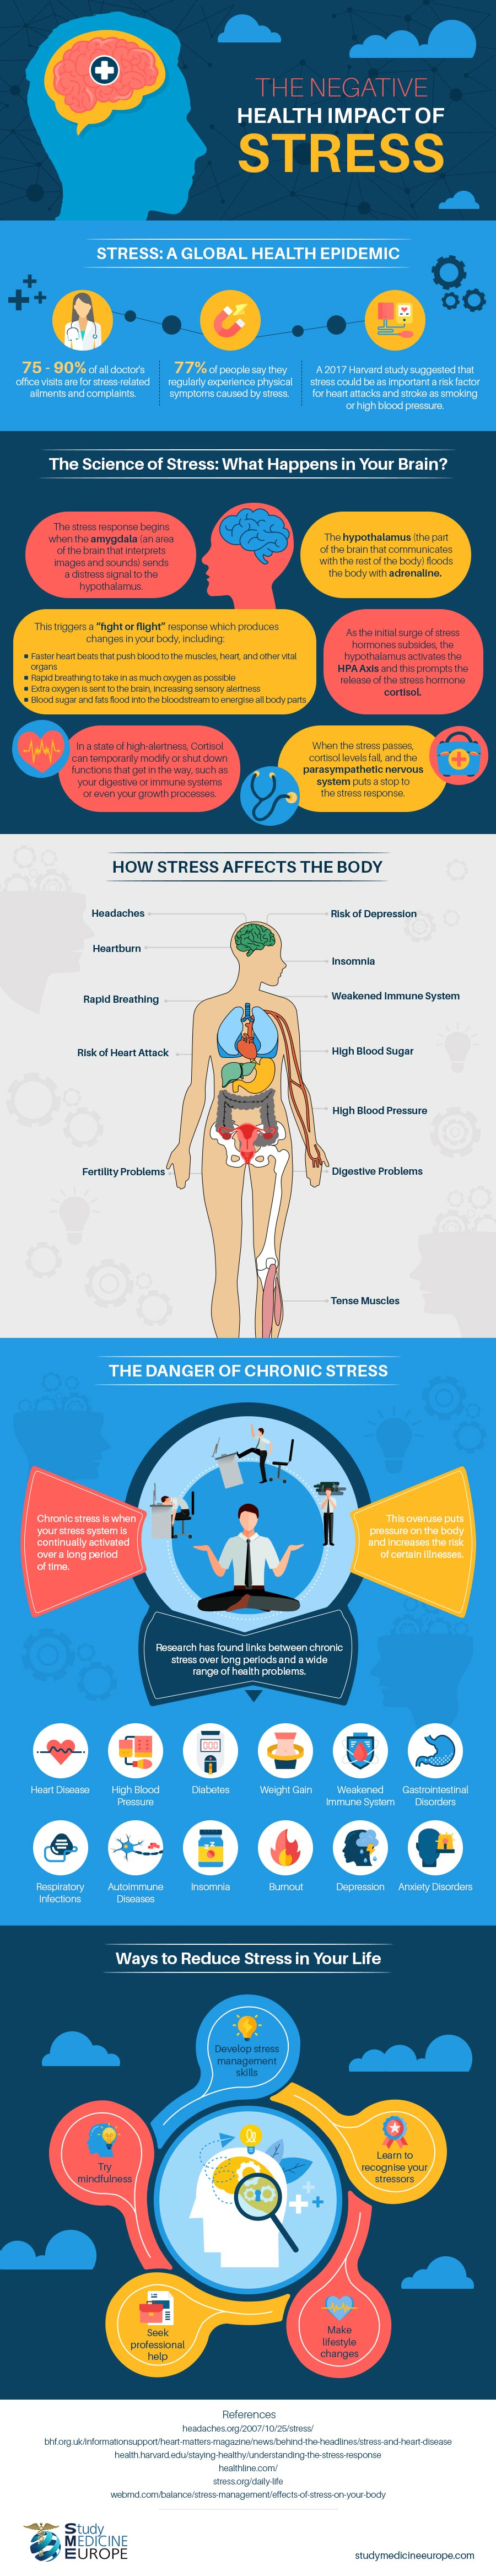 the-negative-health-impact-of-stress